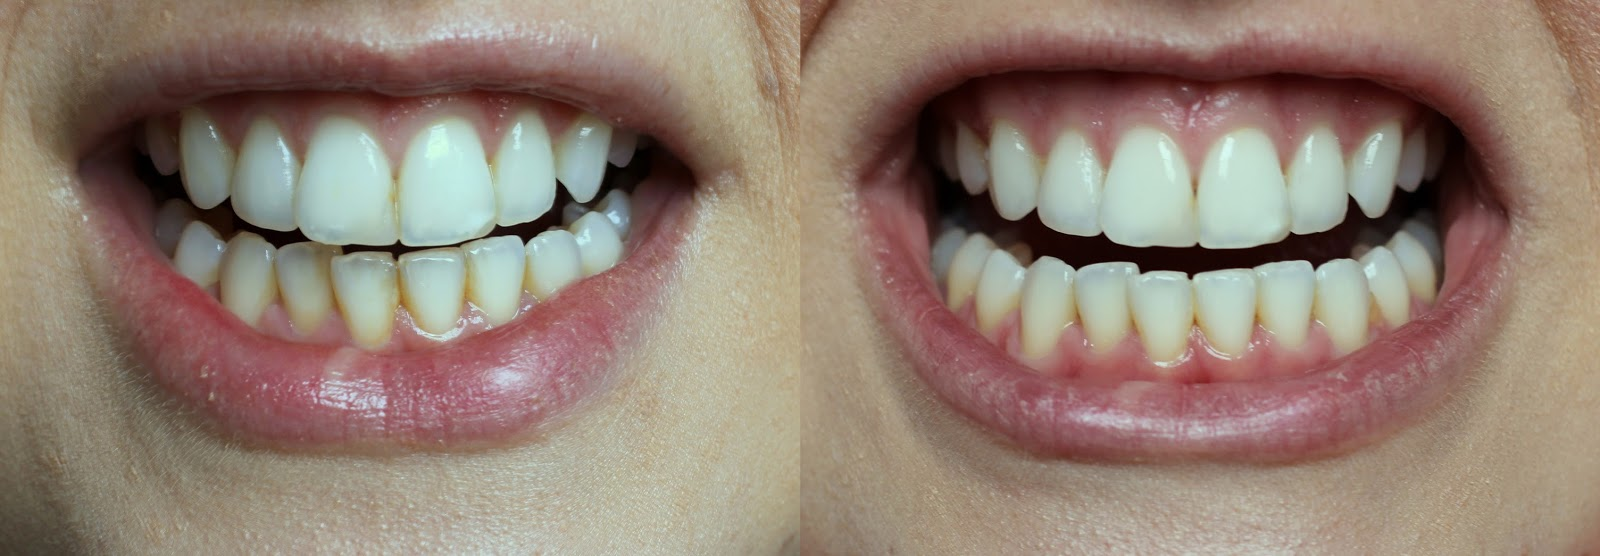 Pola Teeth Whitening before and after